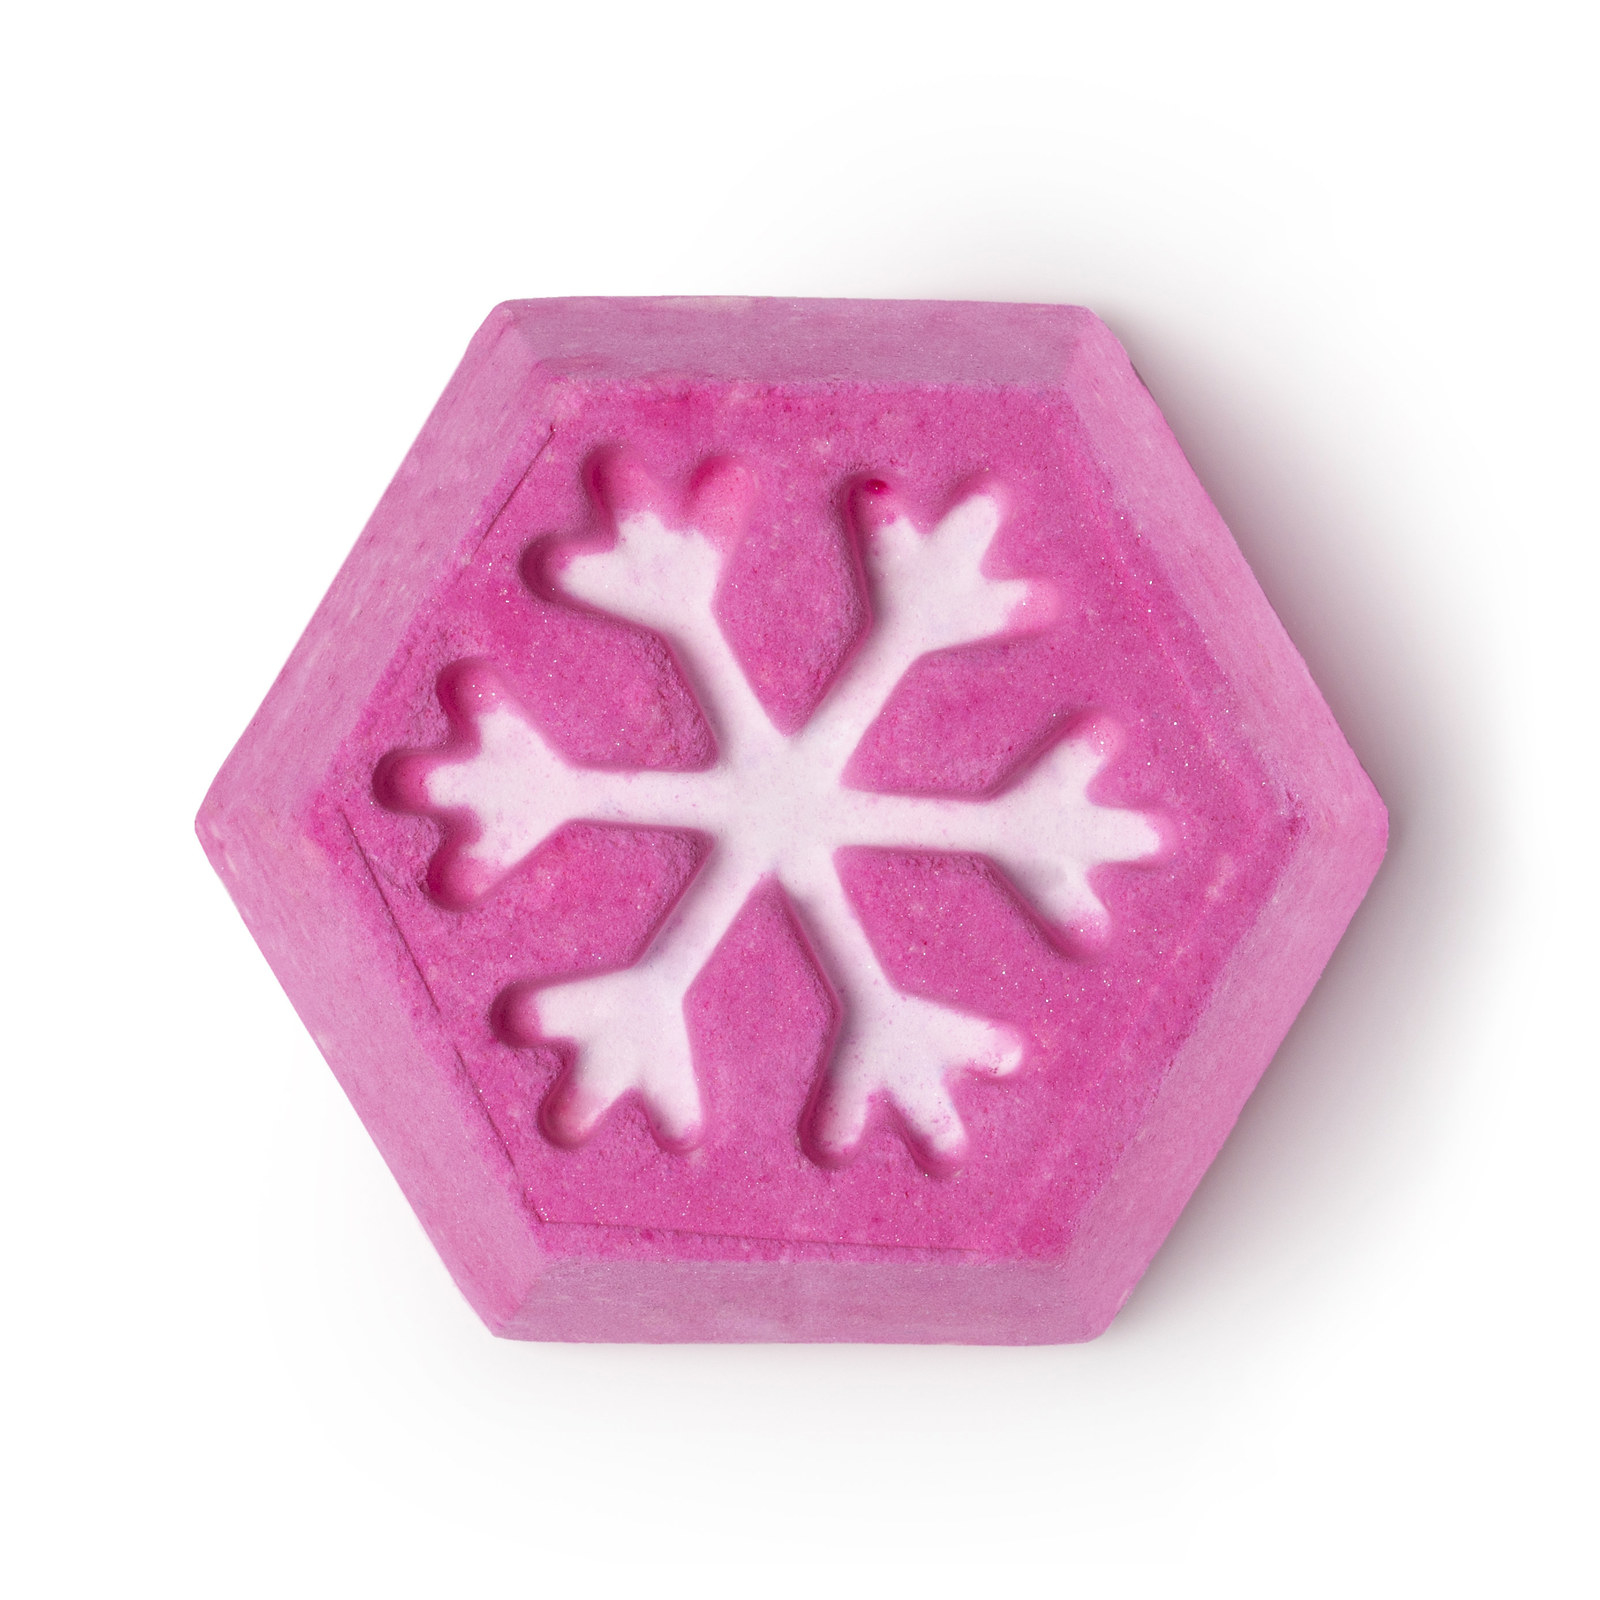 Christmas Bath Bombs Lush.Here S What S New In The Lush Christmas Line This Year